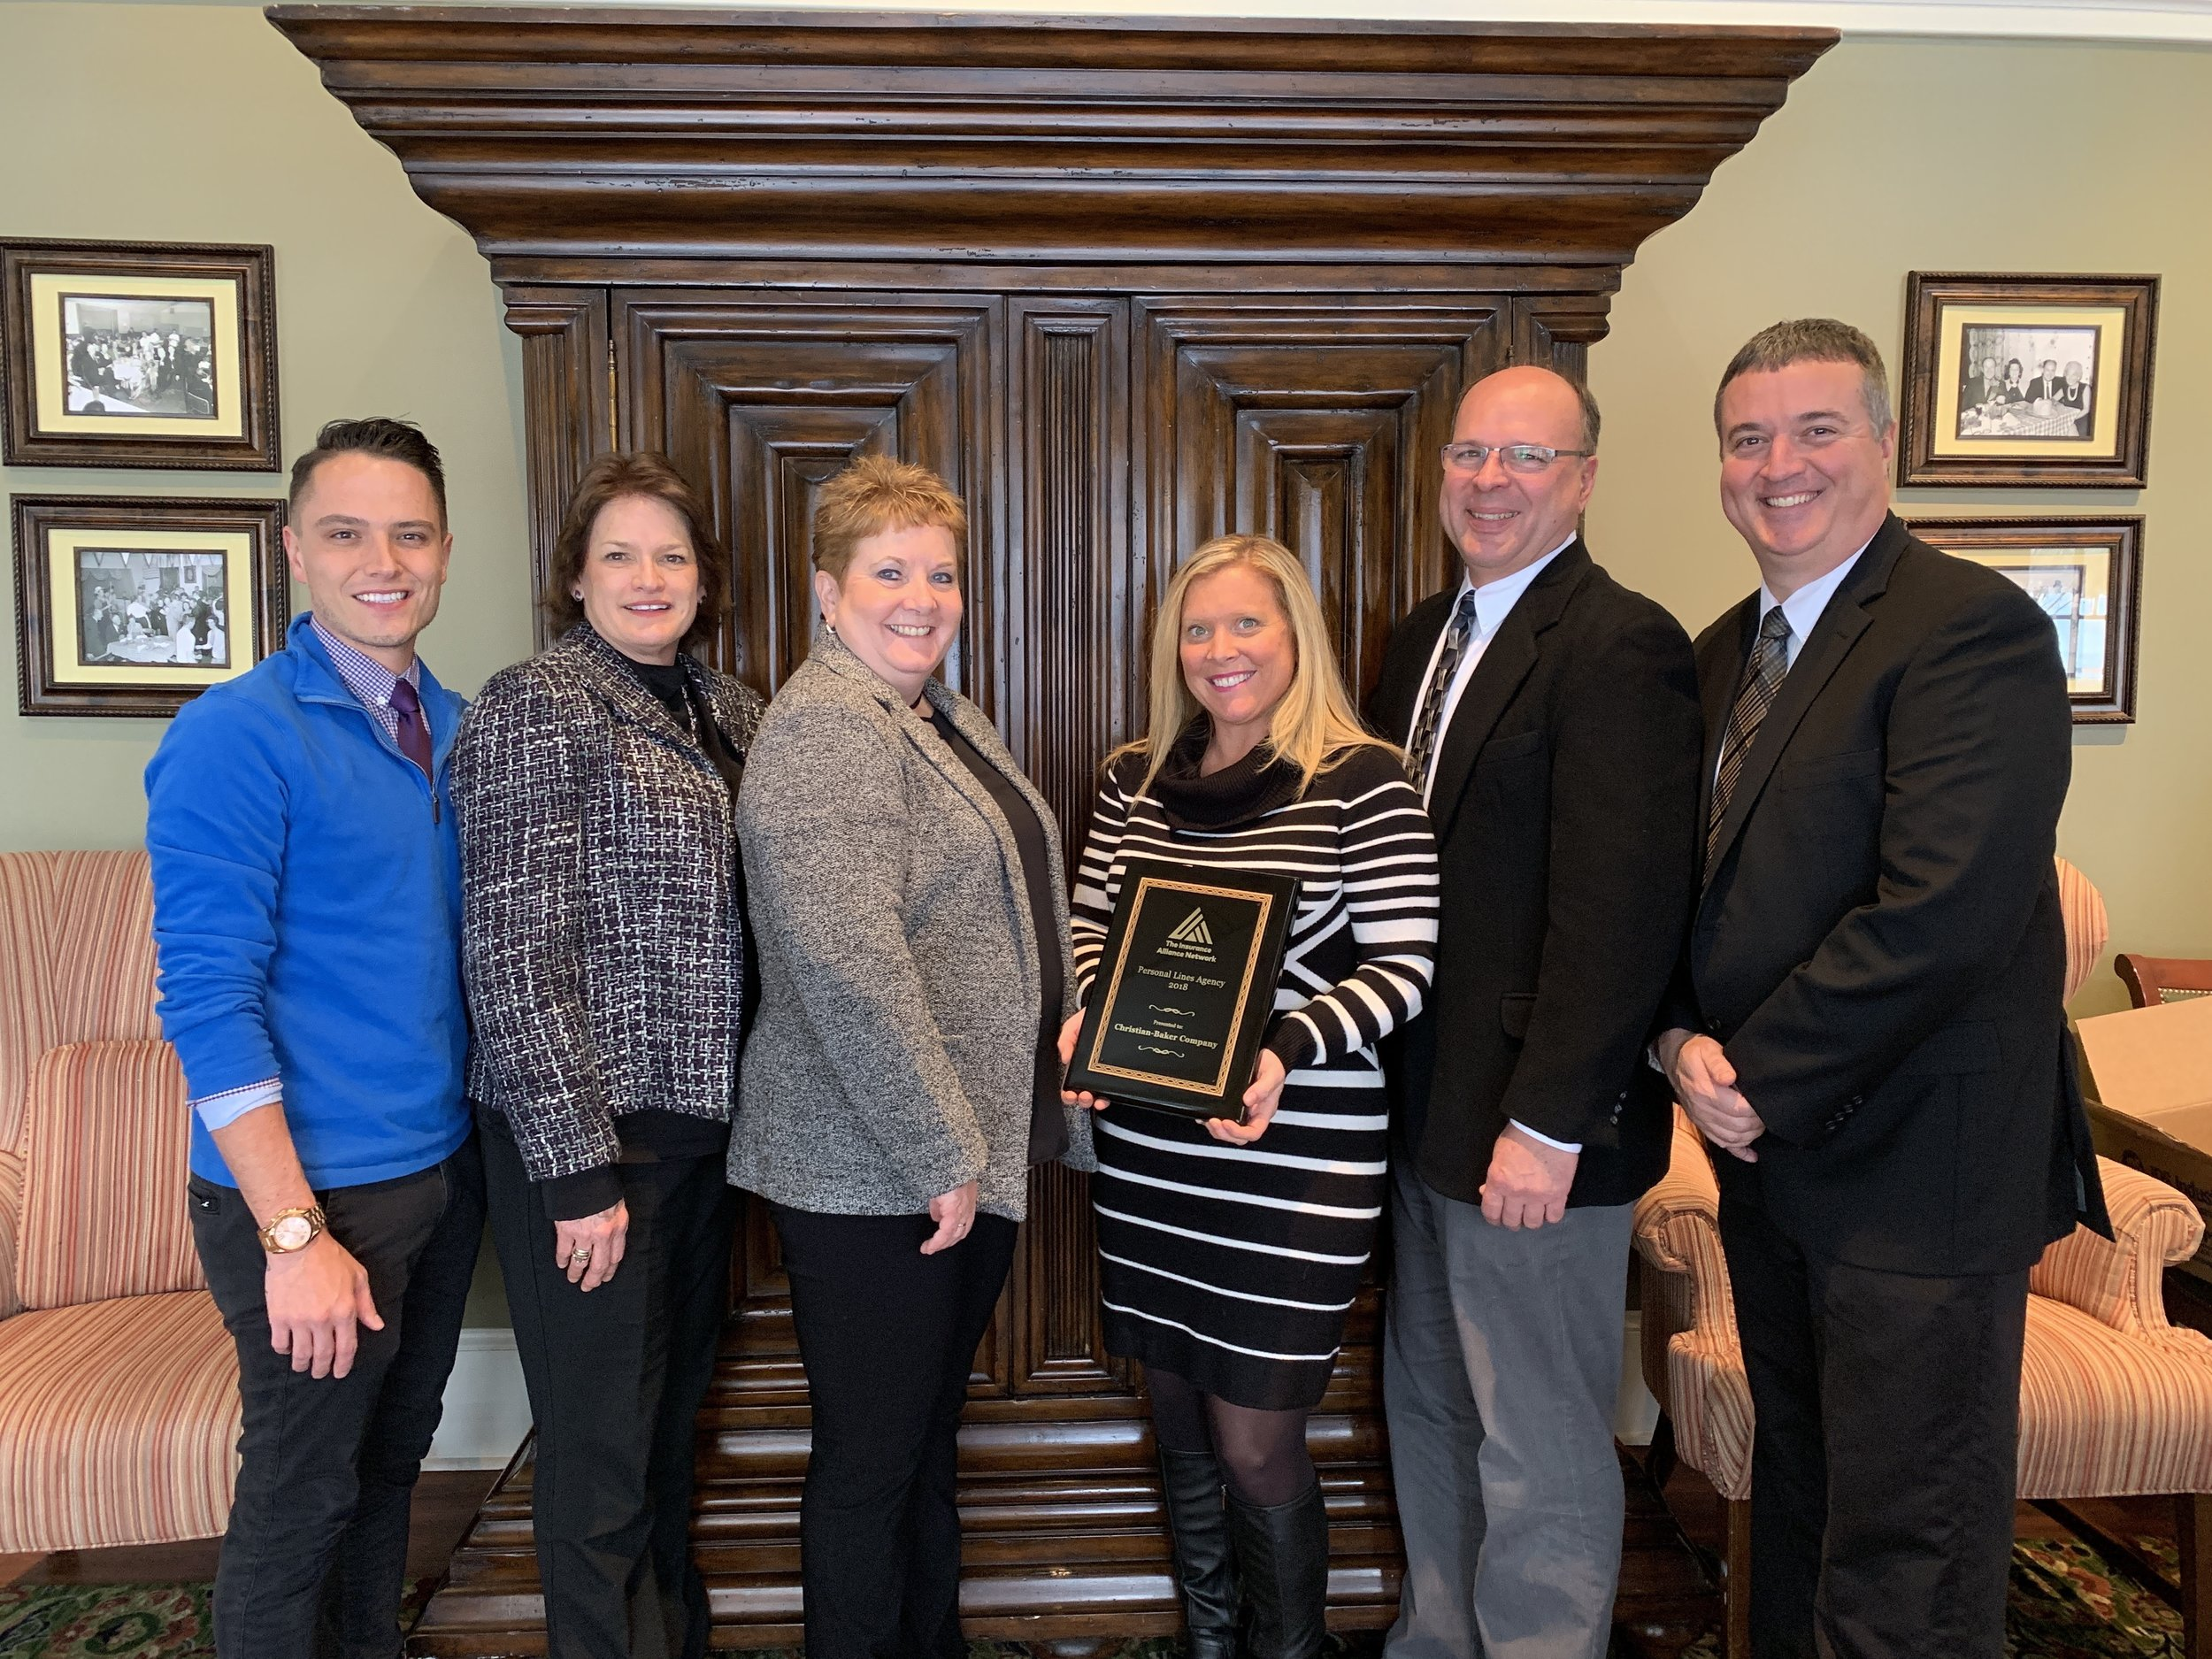 Christian Baker Company and PDM Insurance shared the designation of 2018 Personal Lines Agency of the Year. (Chaz Timmons, Pam Heisy, Rita McMullen (PDM Insurance), Susie Wharton, Jim Pace, Rob Fitzgerald (Christian-Baker Company)